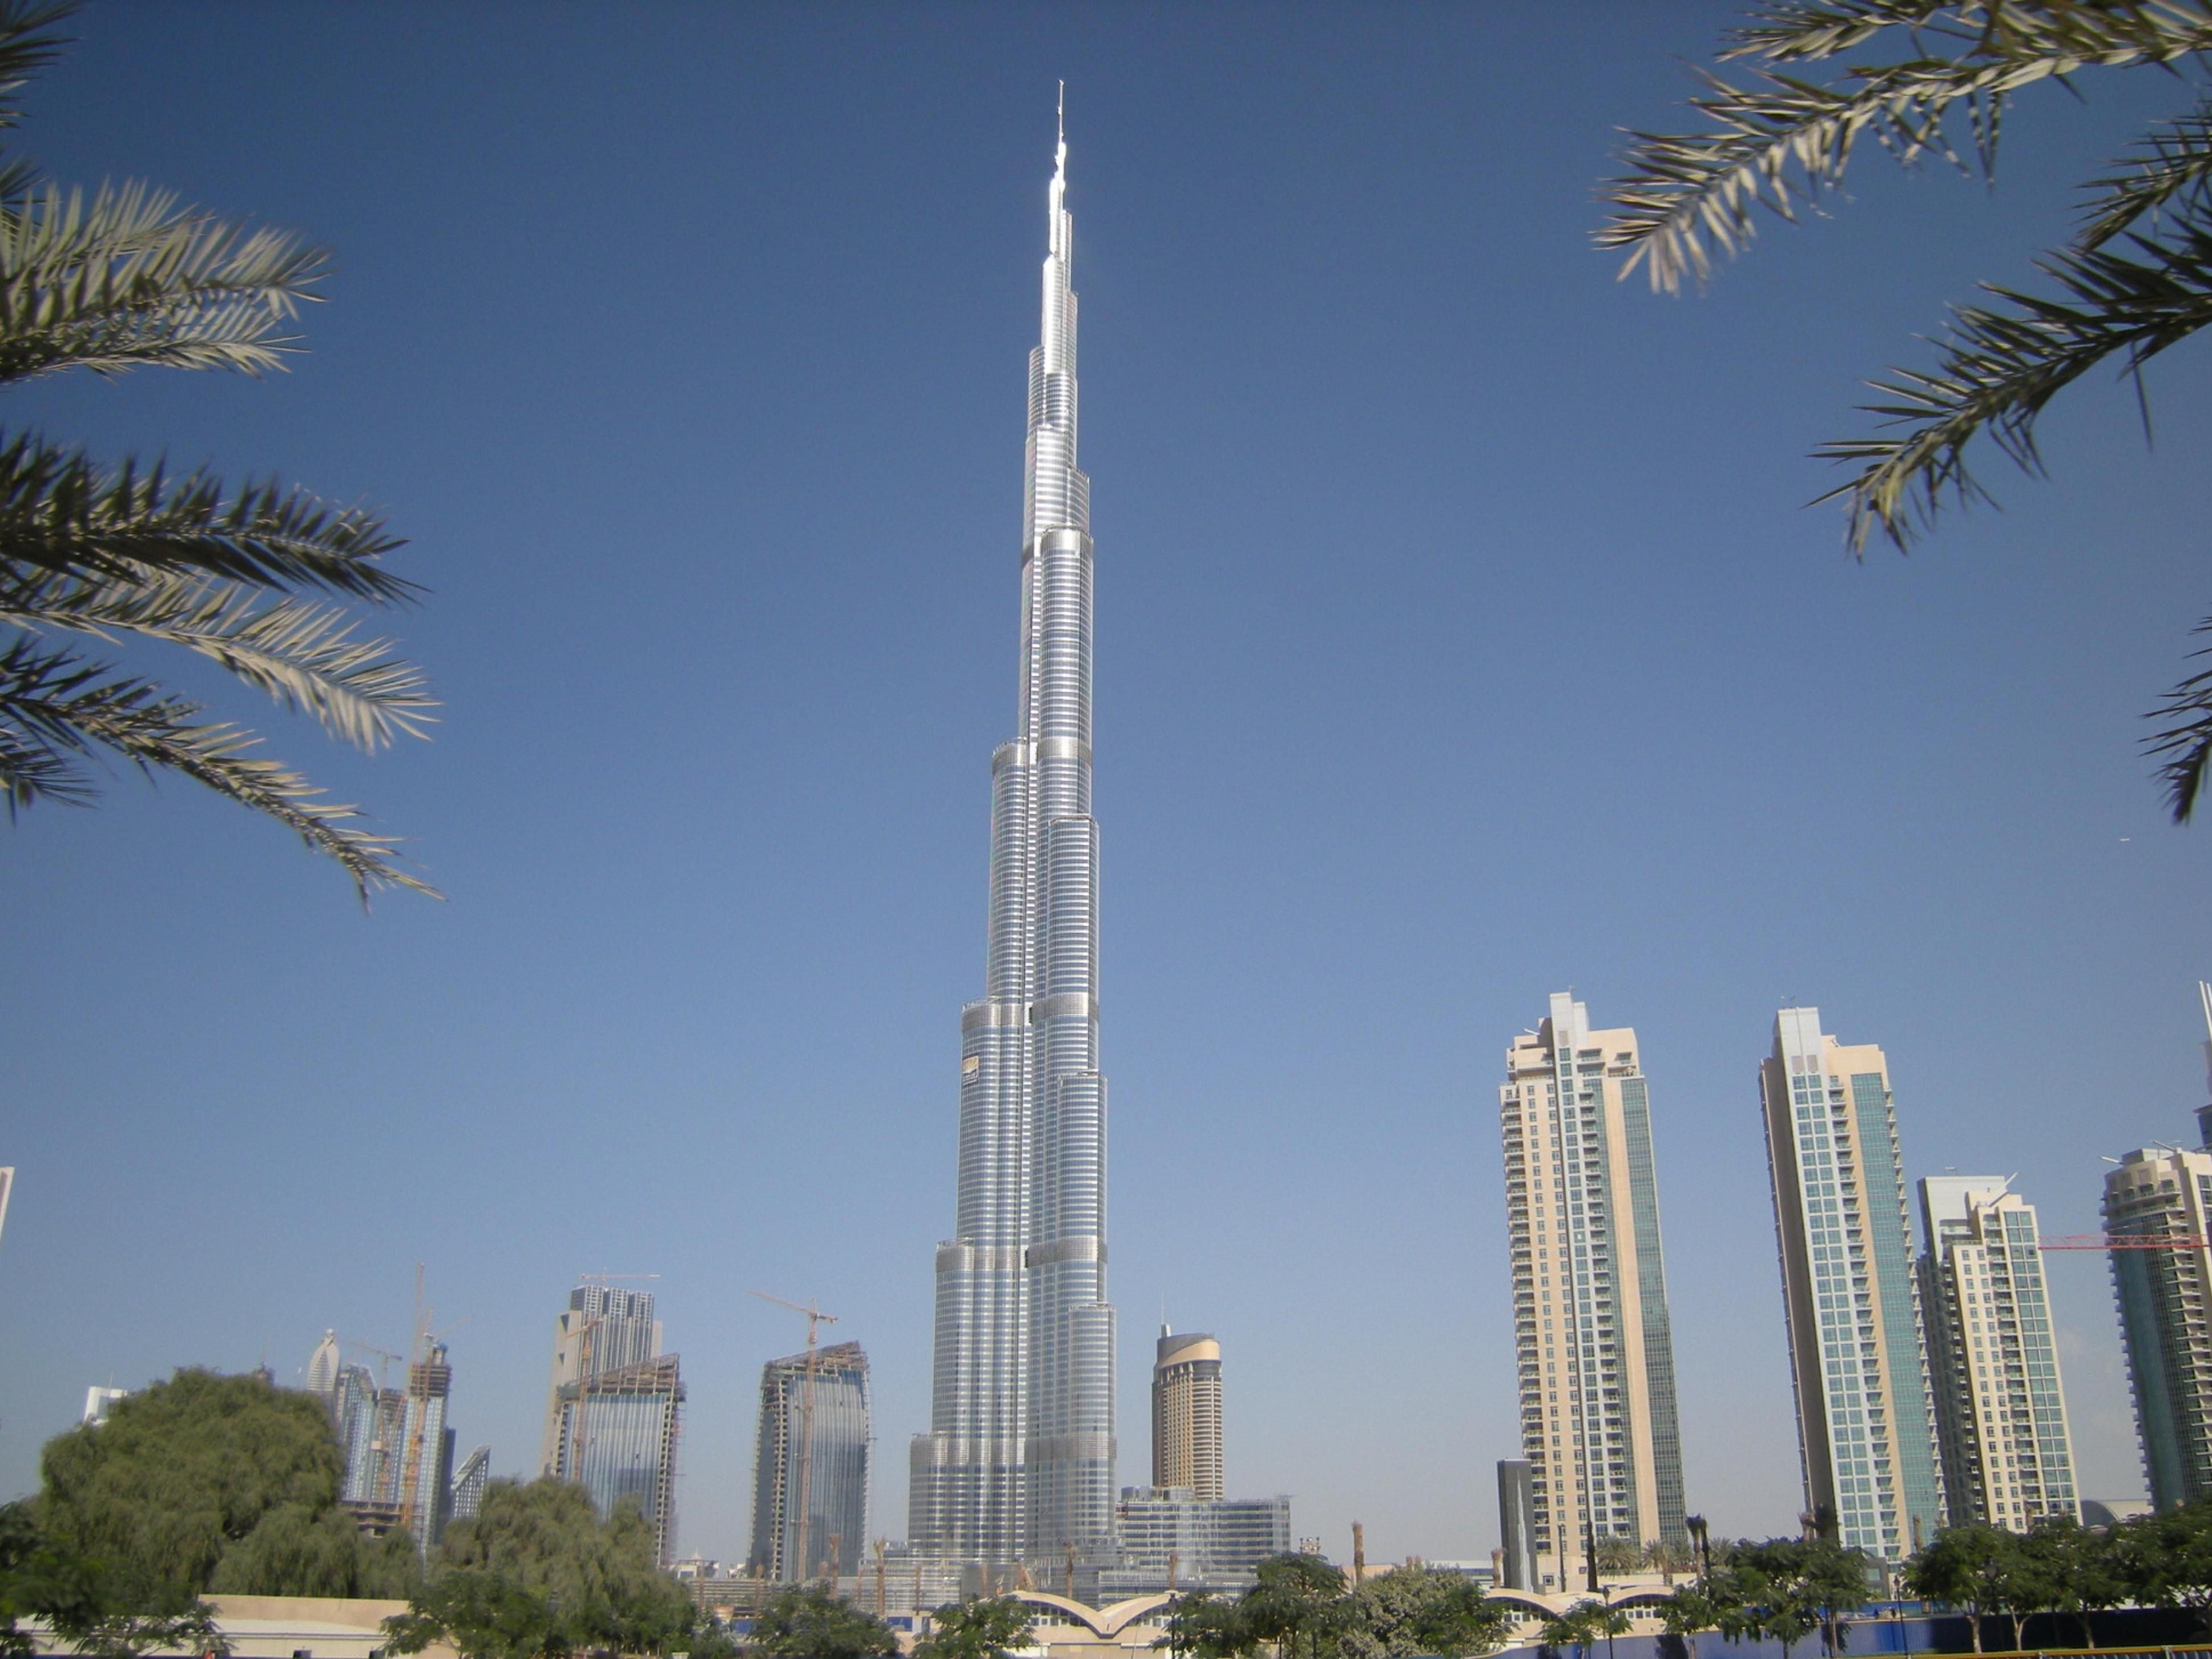 Don't miss Burj Khalifa, world's tallest tower